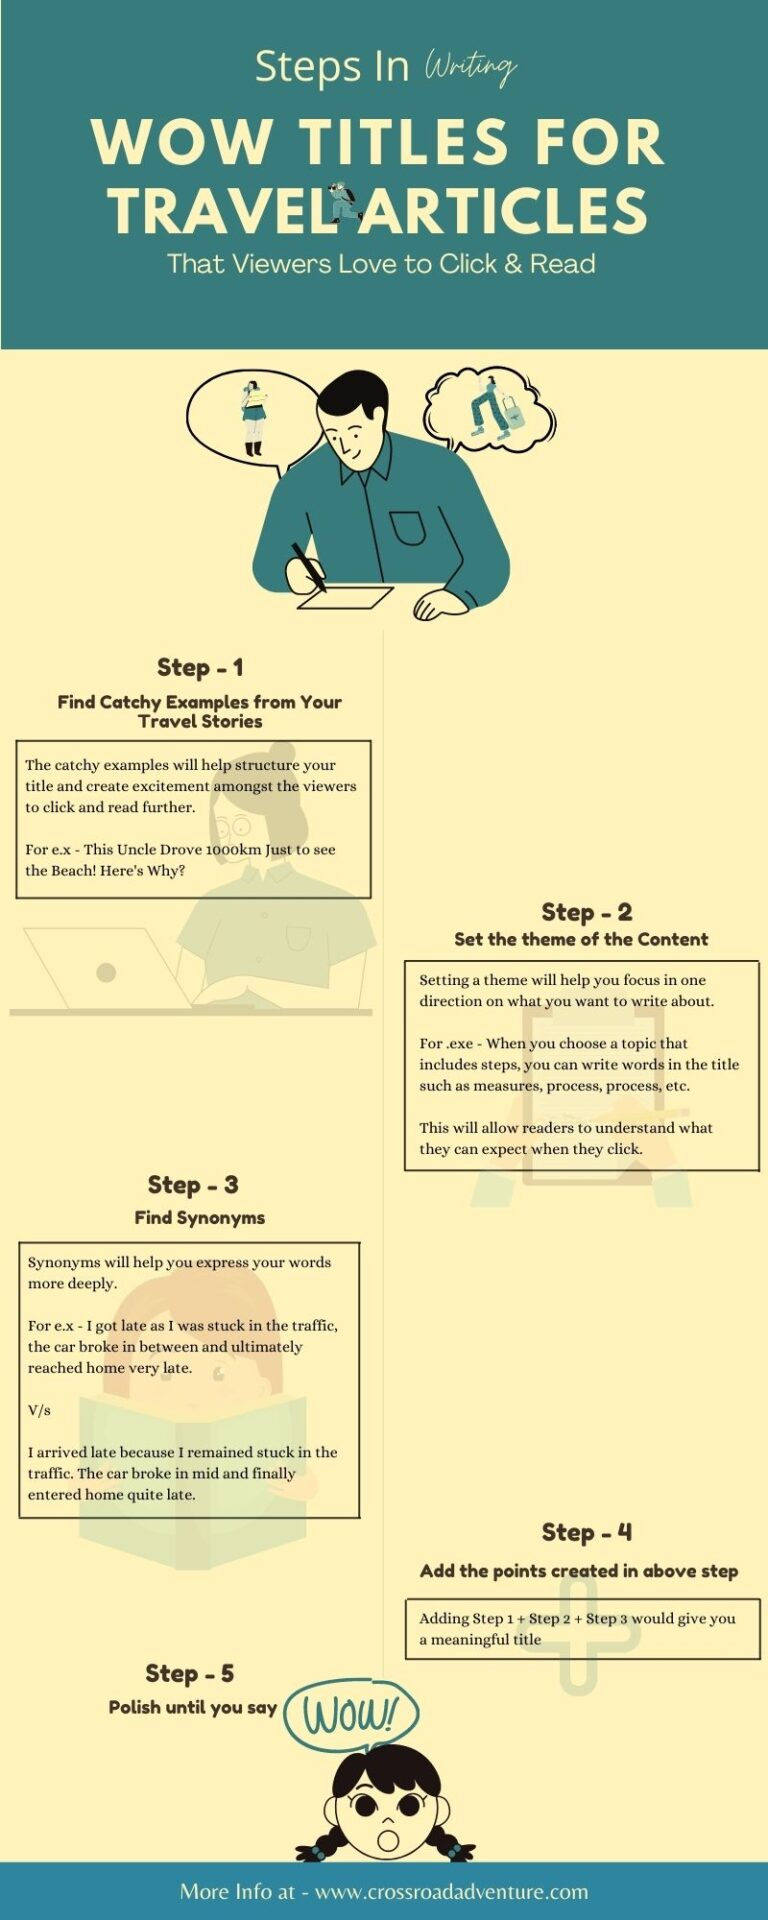 Understanding Steps to Write a WOW Title for a Travel Article Using Infographic